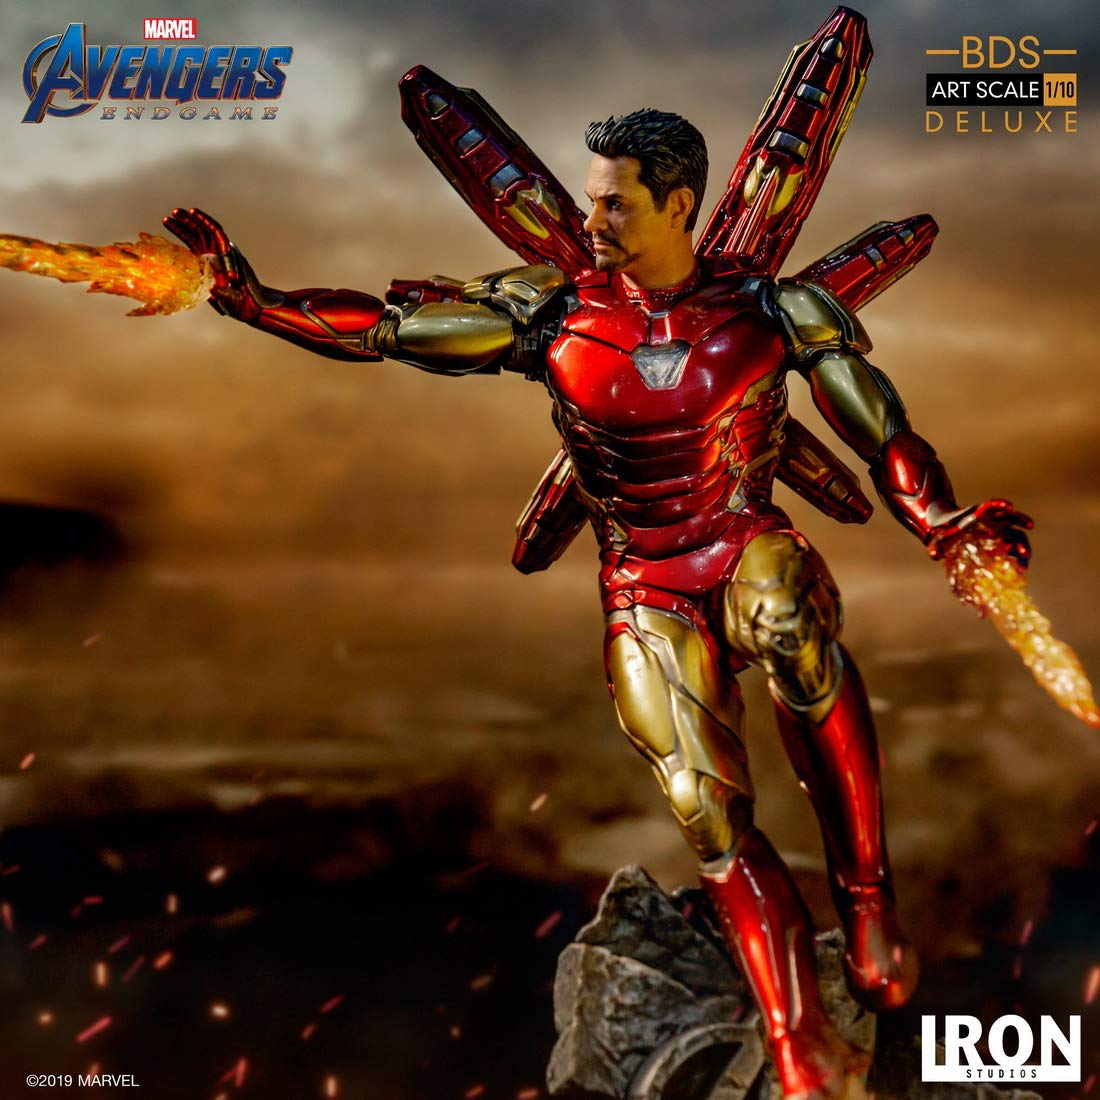 Iron Man Mark LXXXV Avengers Issue BDS Art Scale Iron Studios Limited Edition